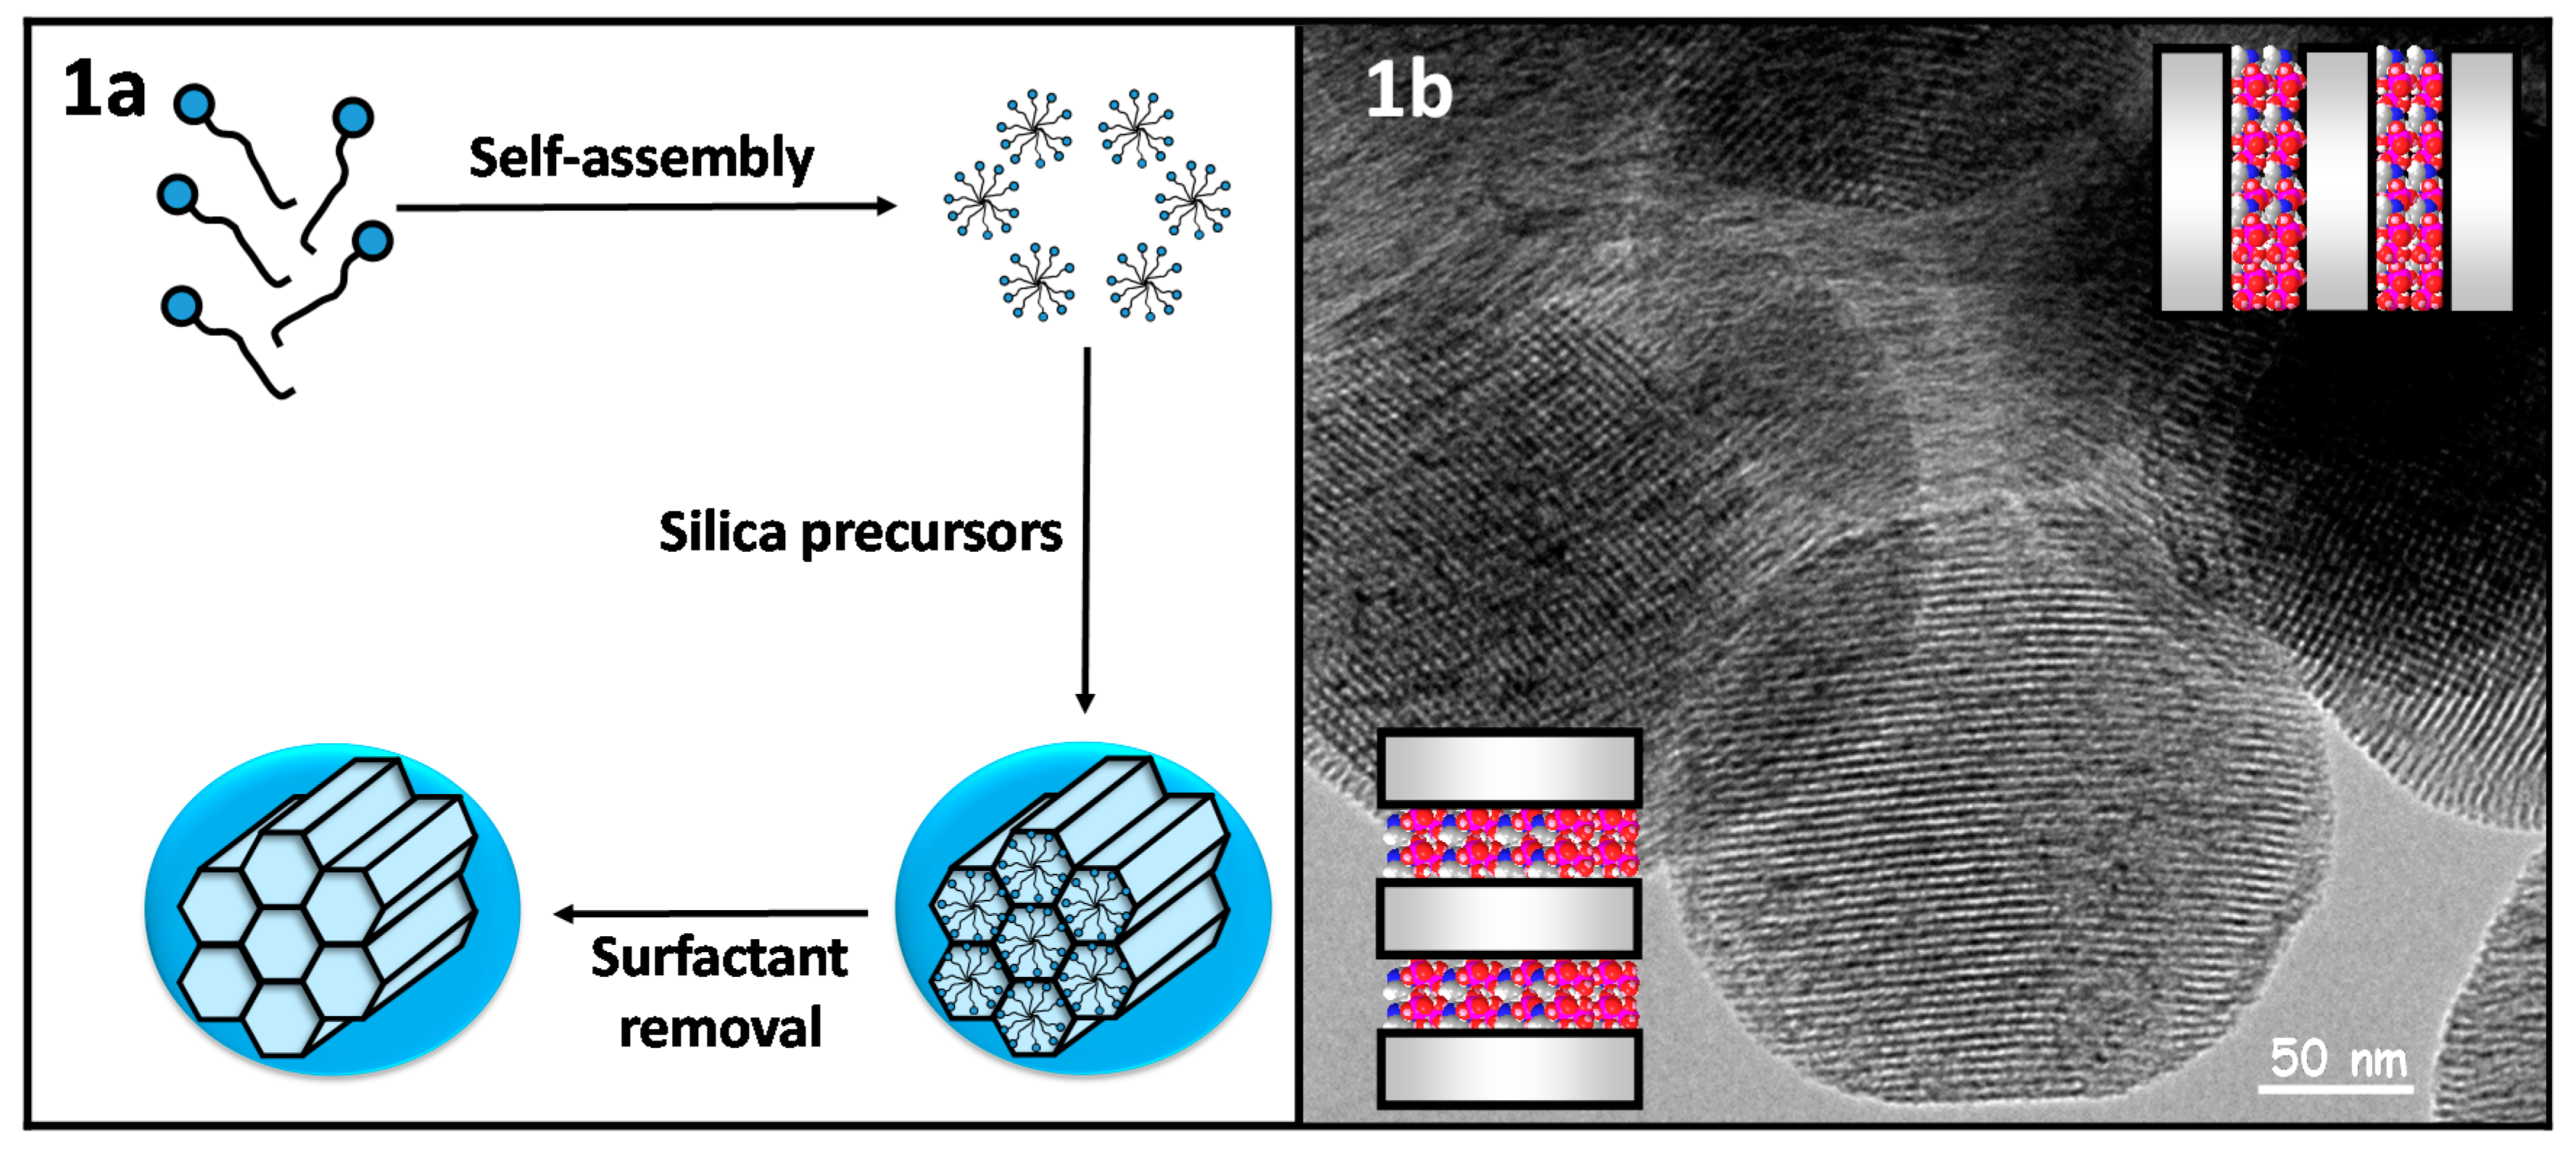 mesoporous silica nanoparticles in drug delivery and biomedical applications